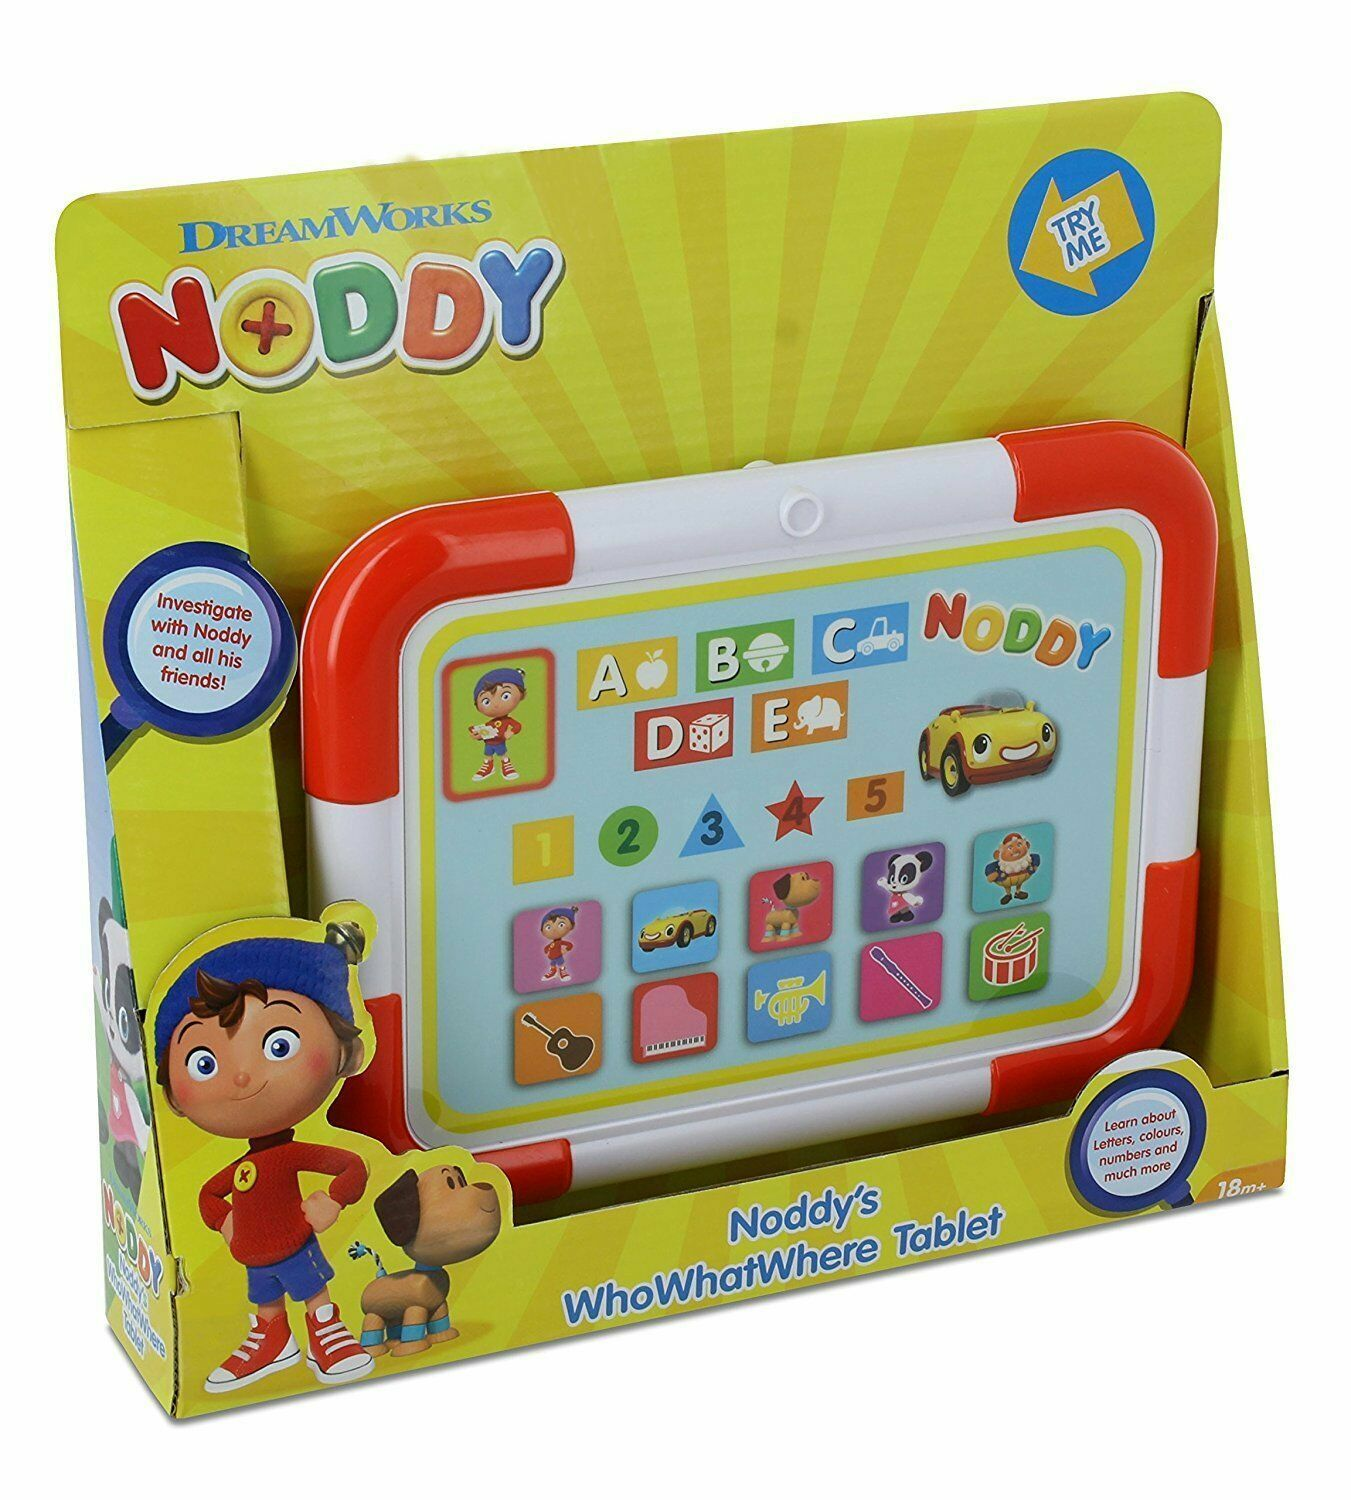 DreamWorks NODDY Noddy's Who What Where Interactive Tablet Toy